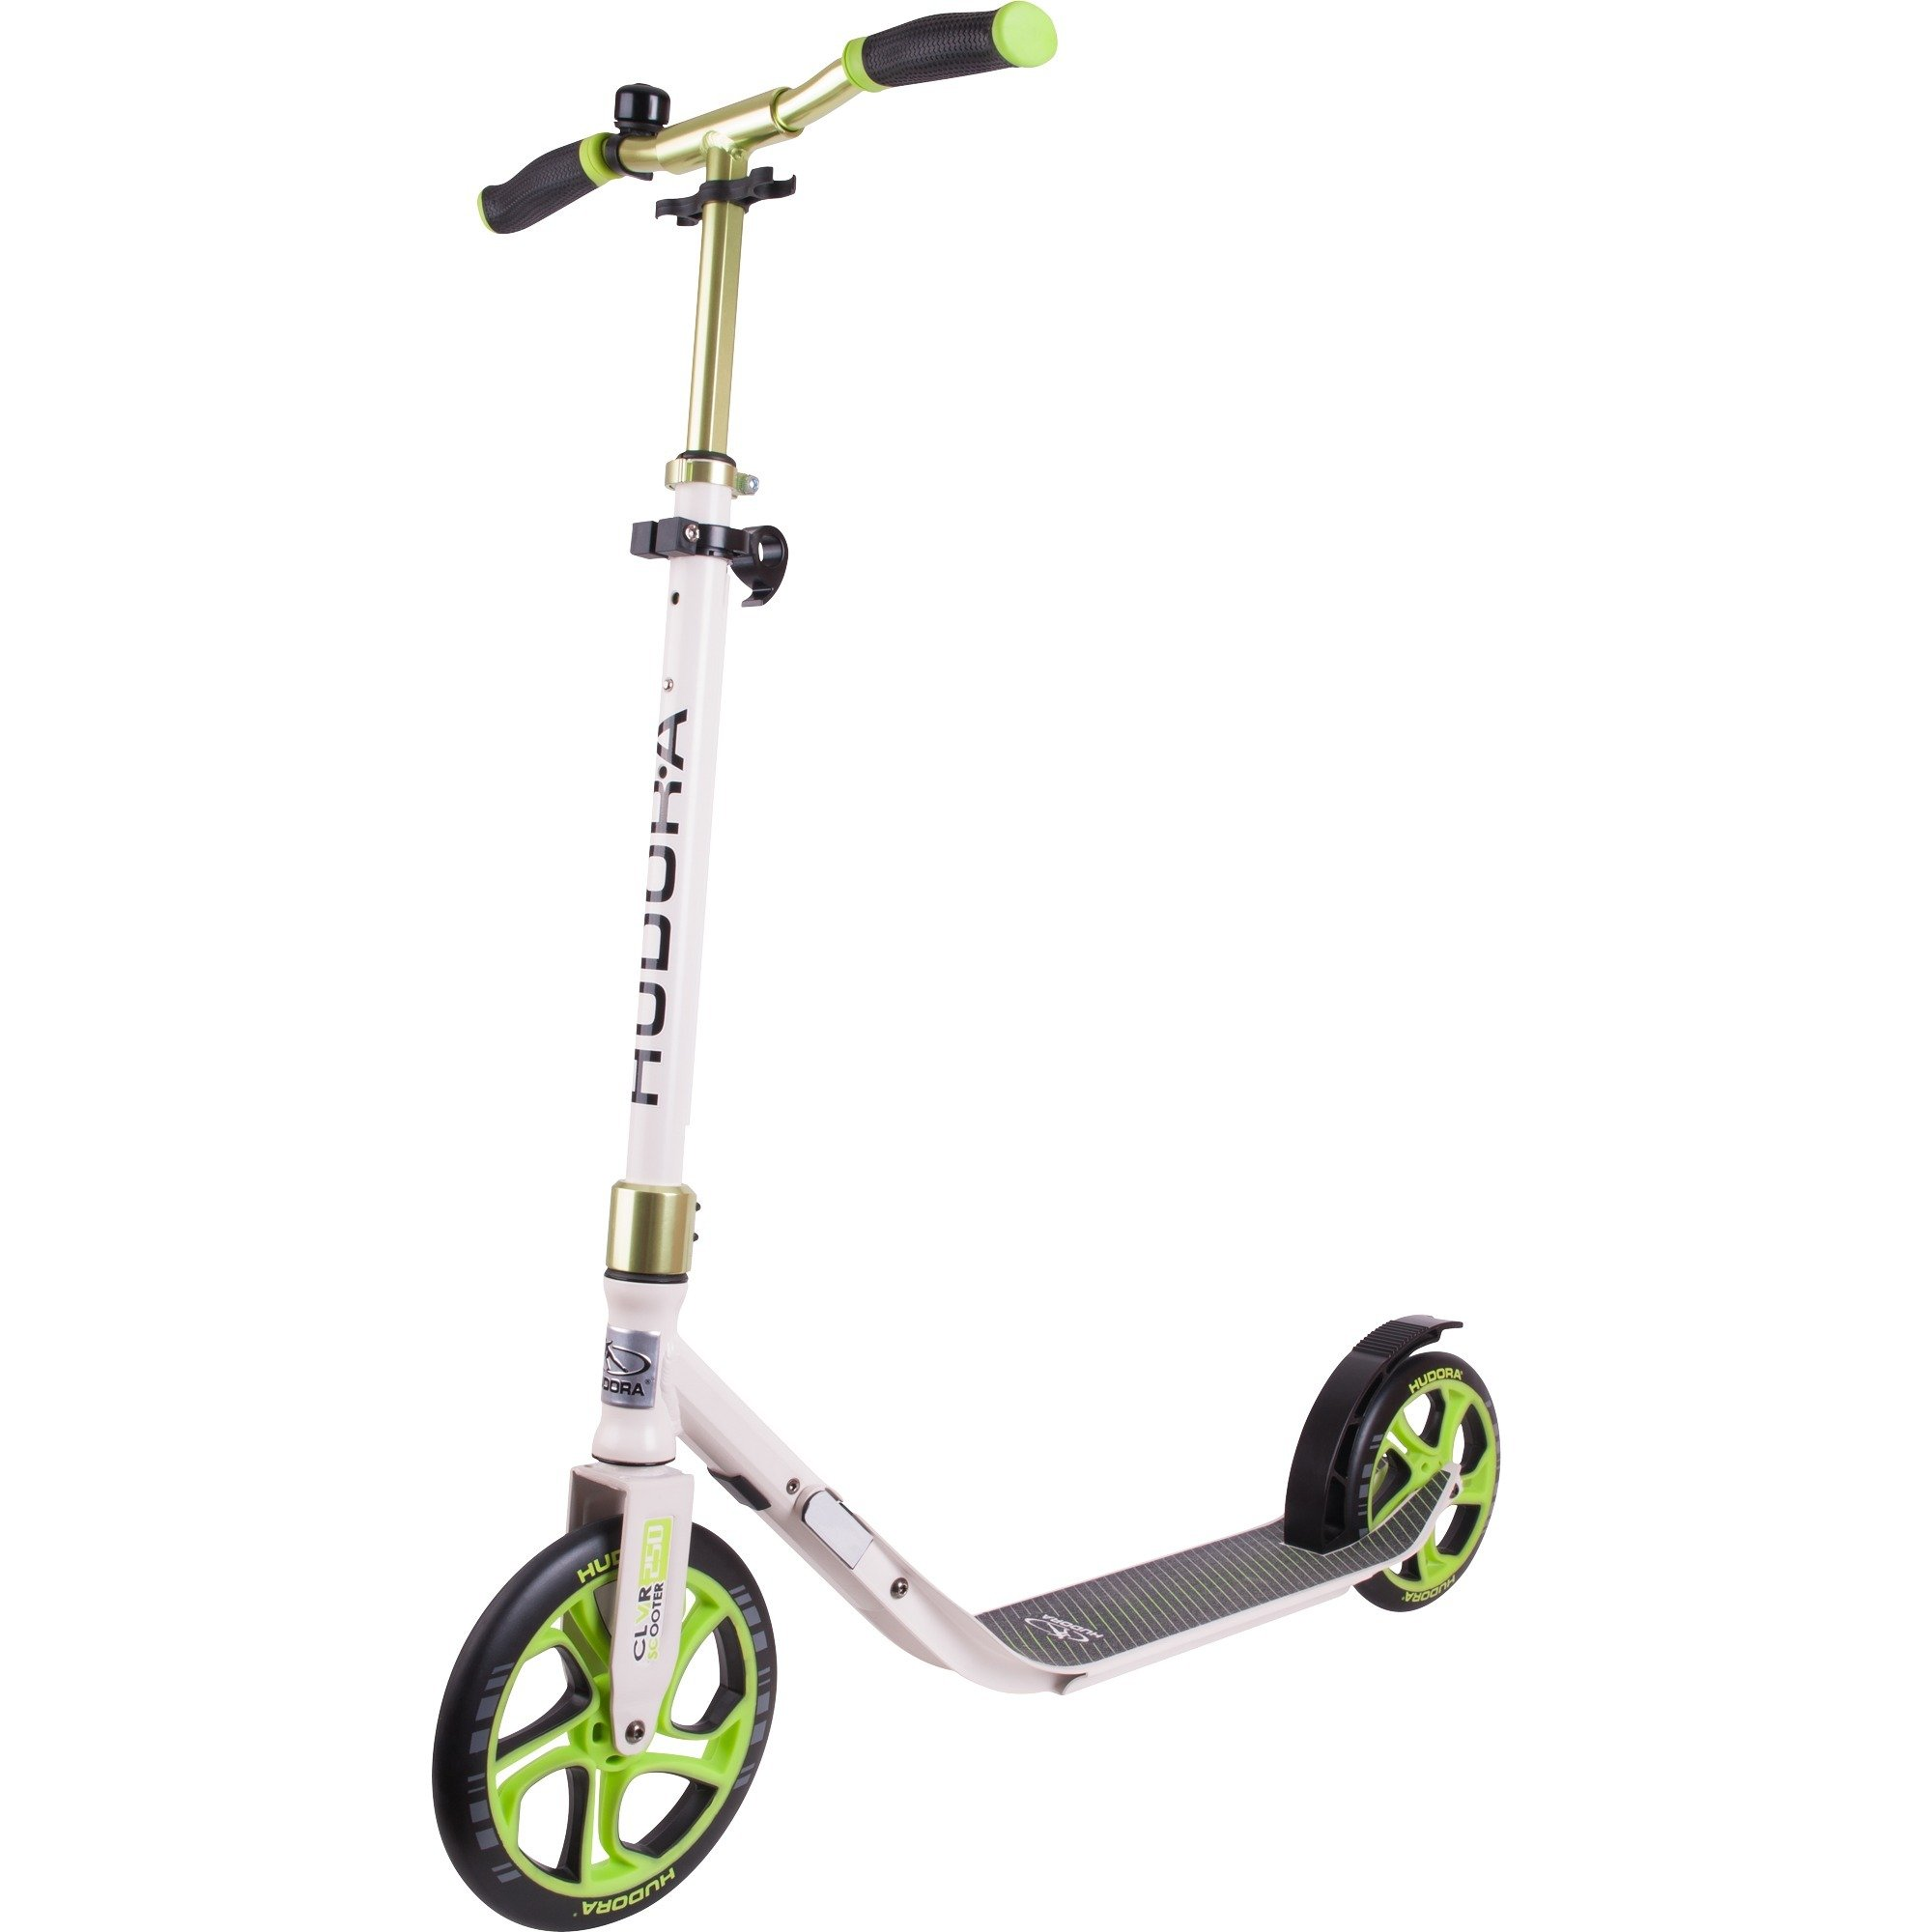 14830 Adultes Vert, Blanc scooter, Trottinette